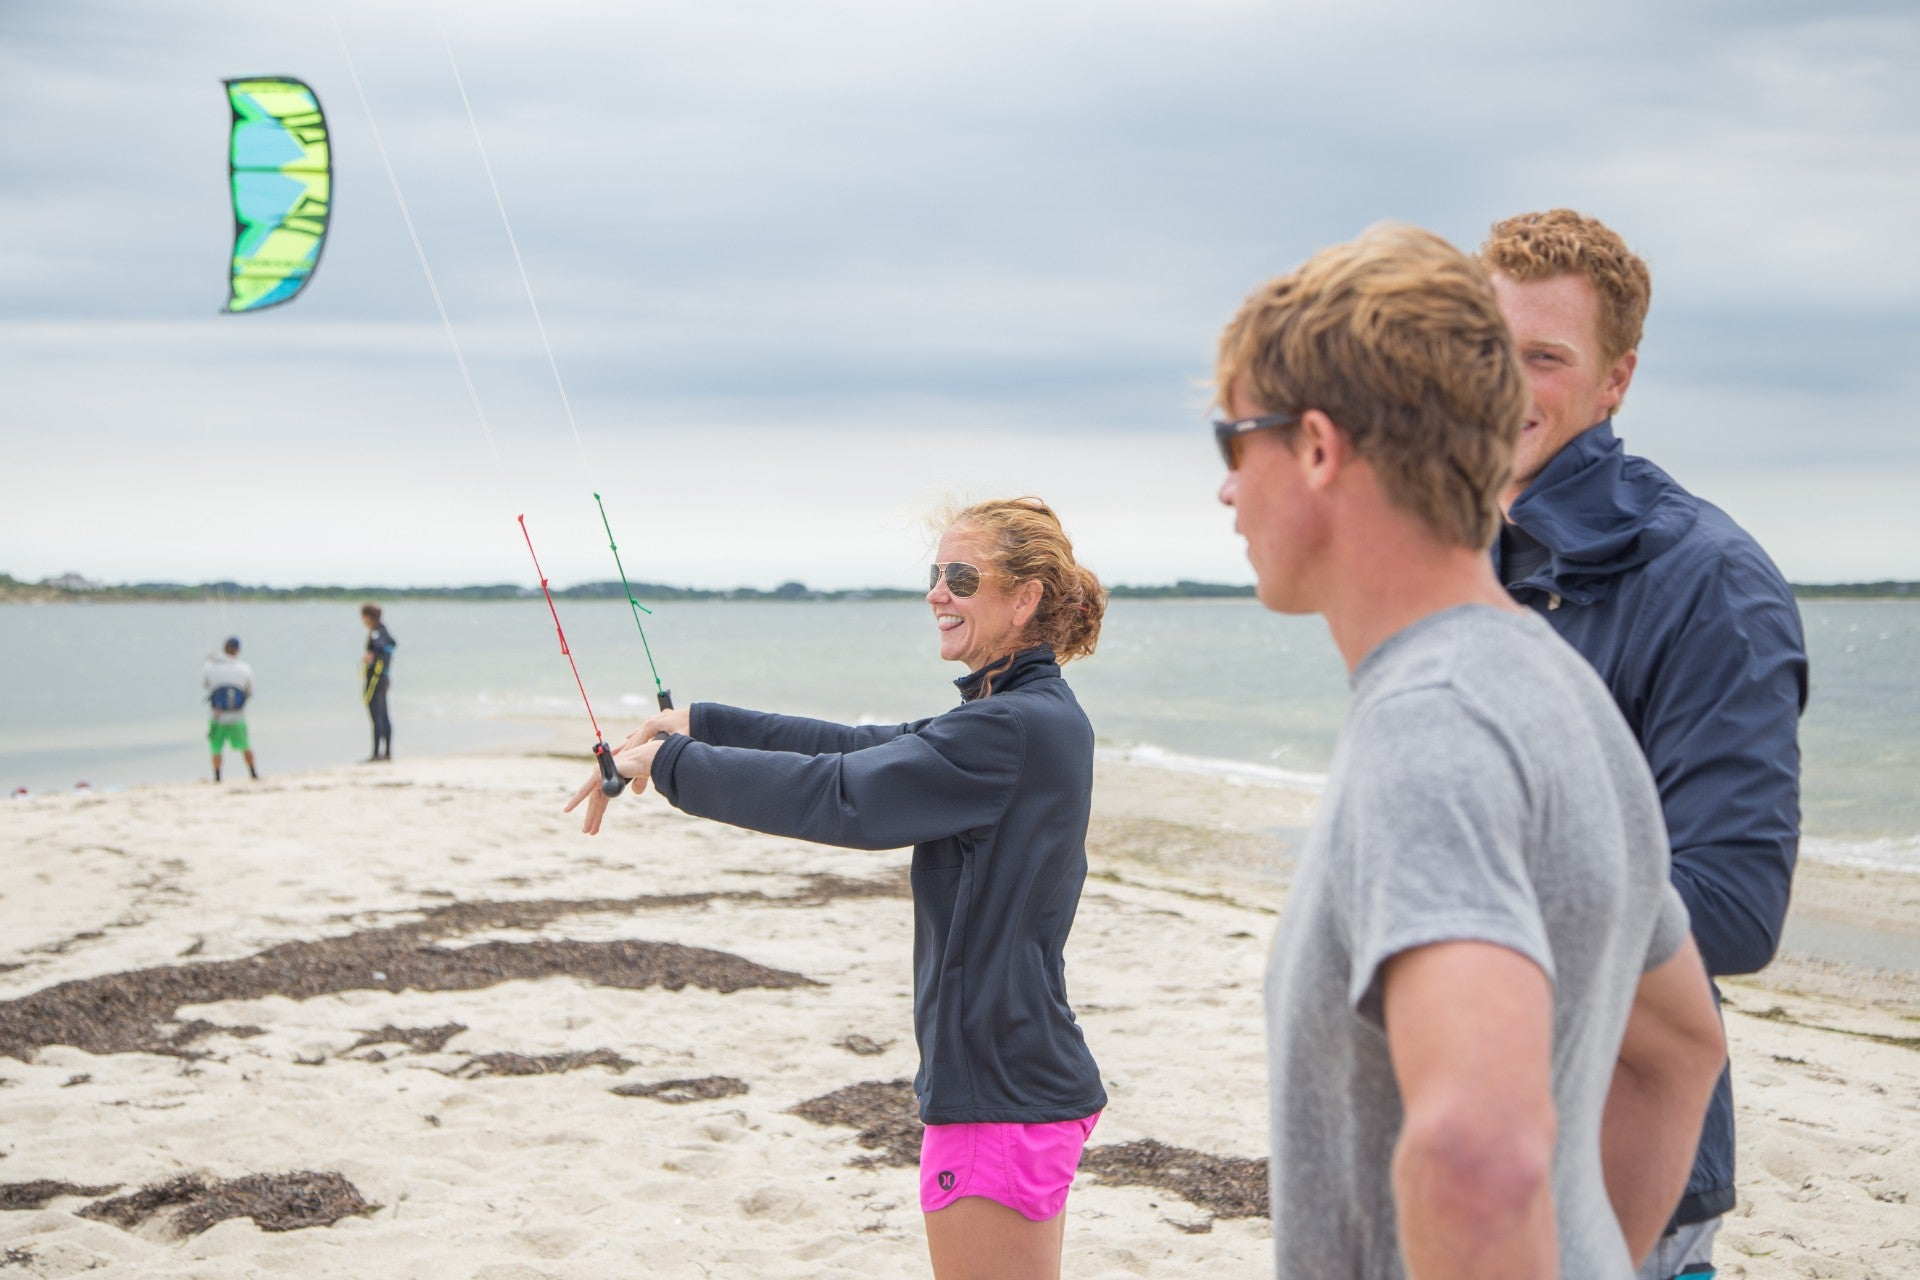 FIRST TRACKS KITE CAMP – LEARN TO KITEBOARD ON NANTUCKET